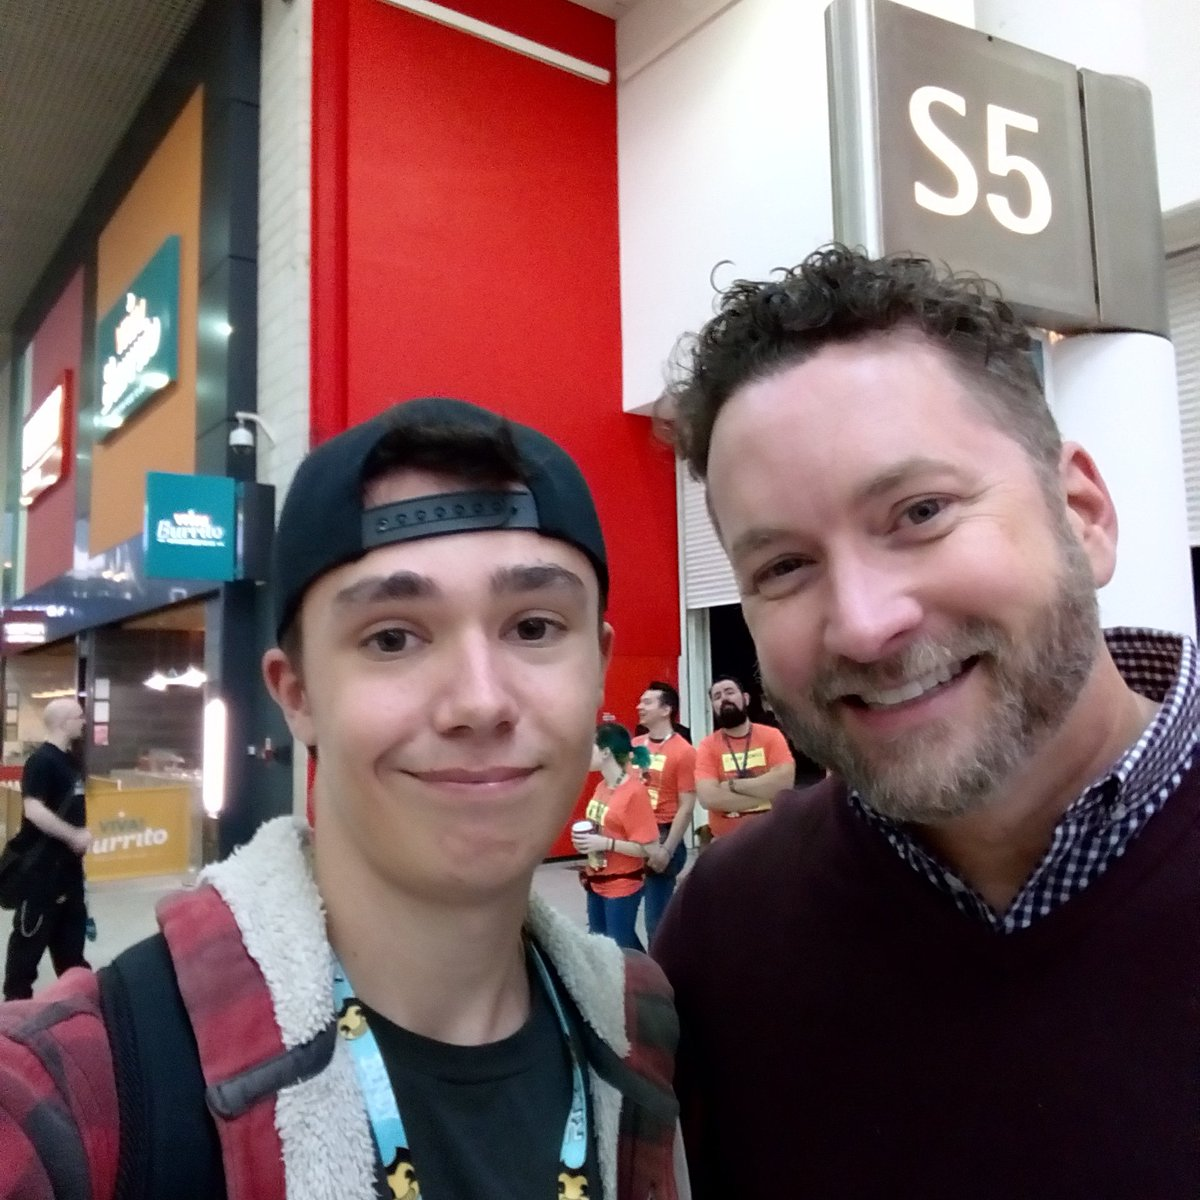 So today I got to meet my hero @burnie burns! Thanks for making my childhood!